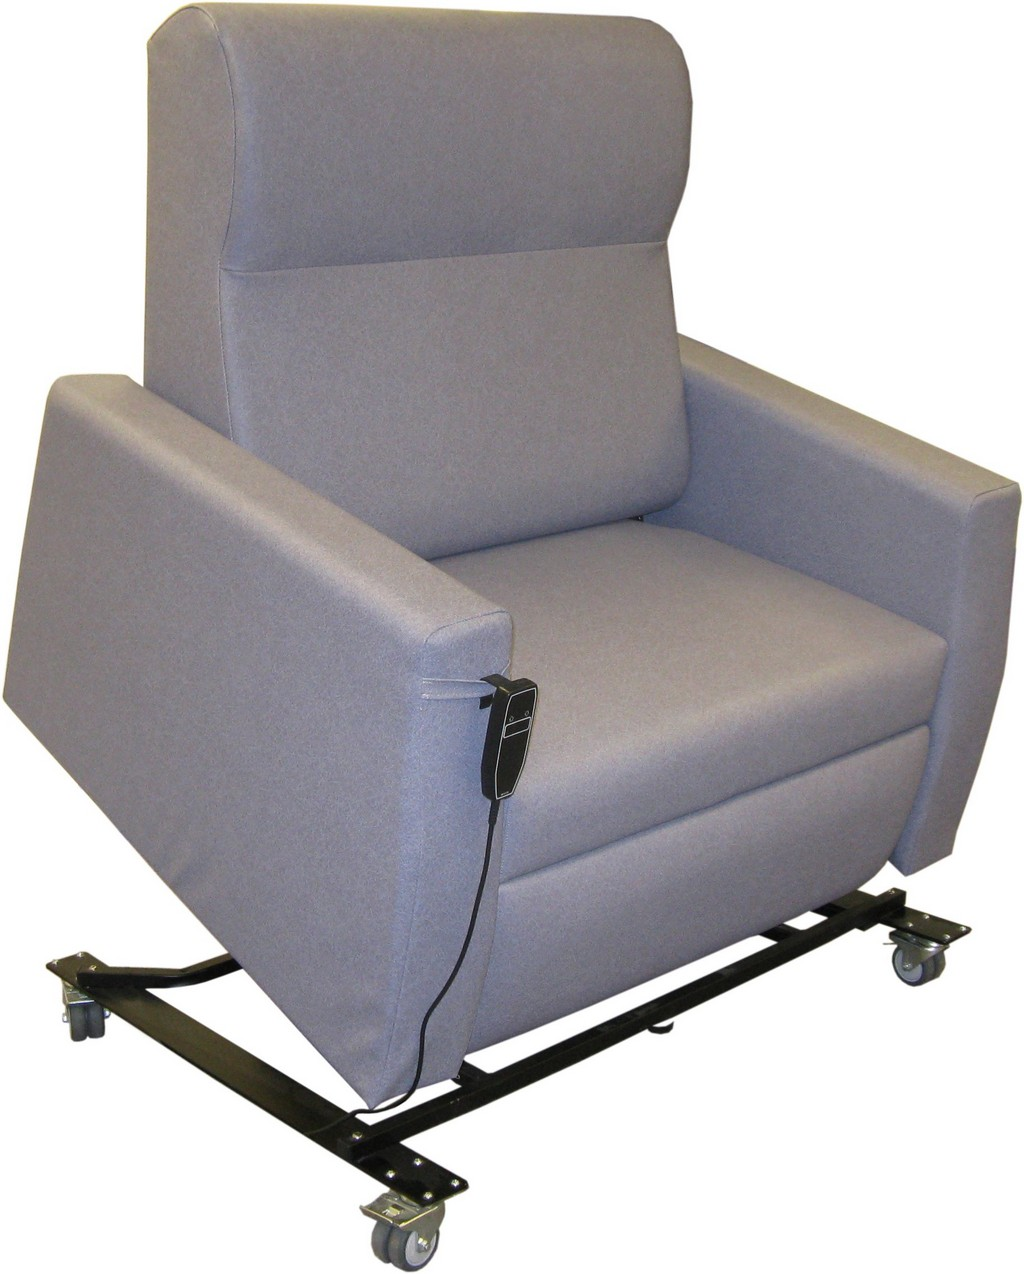 Chair Lifts For Seniors Wheelchair Assistance Lift Chairs